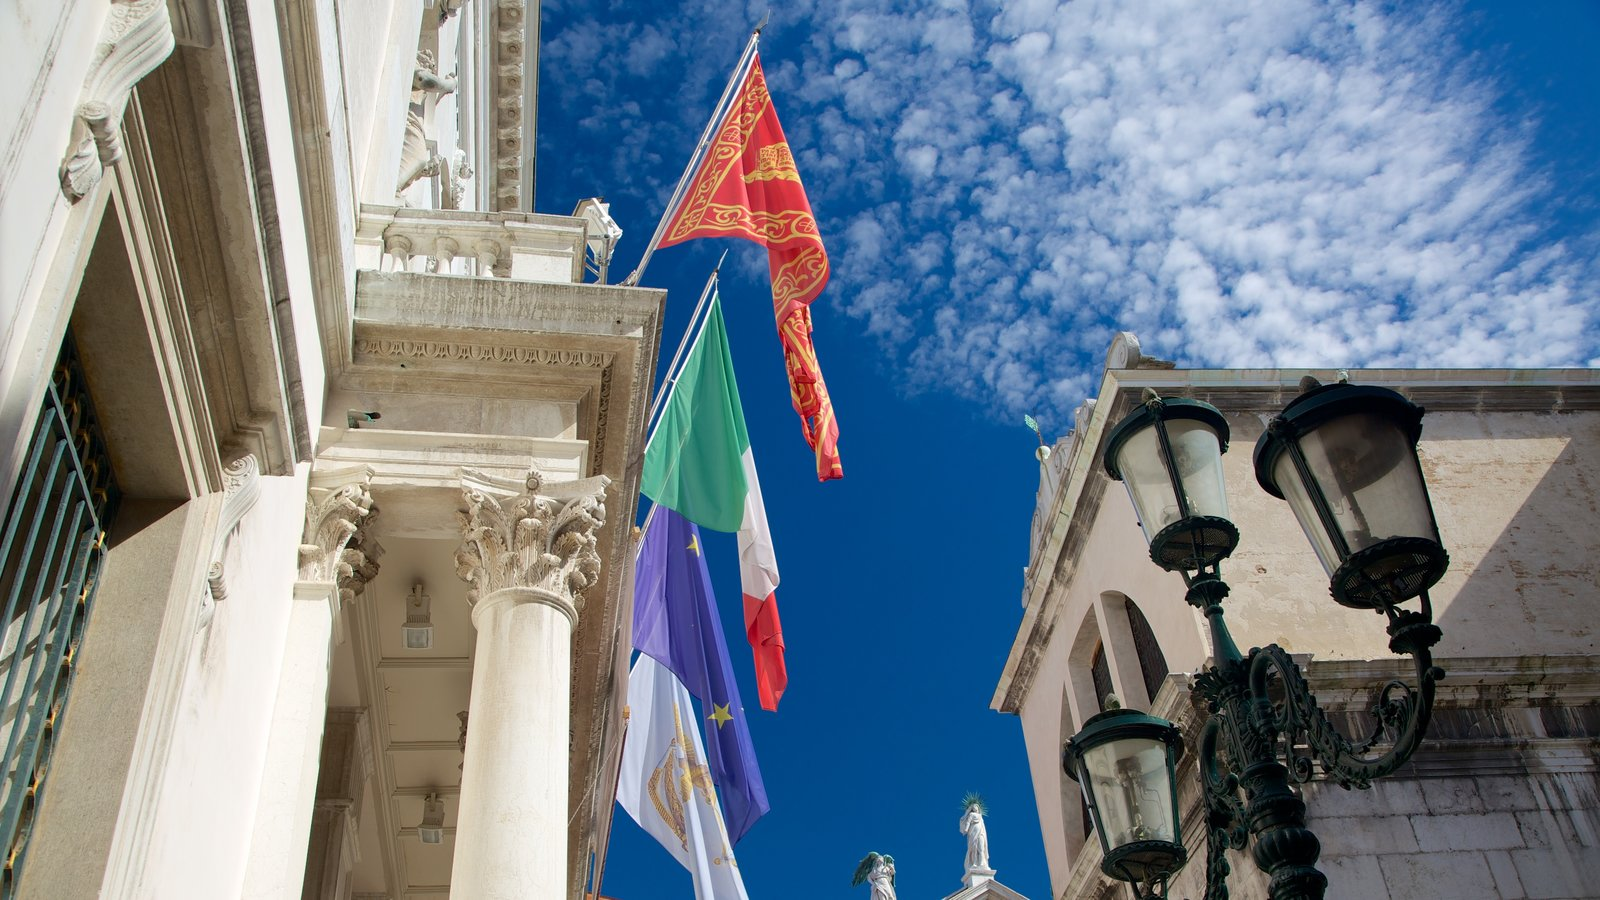 La Fenice Opera House showing a city and heritage architecture